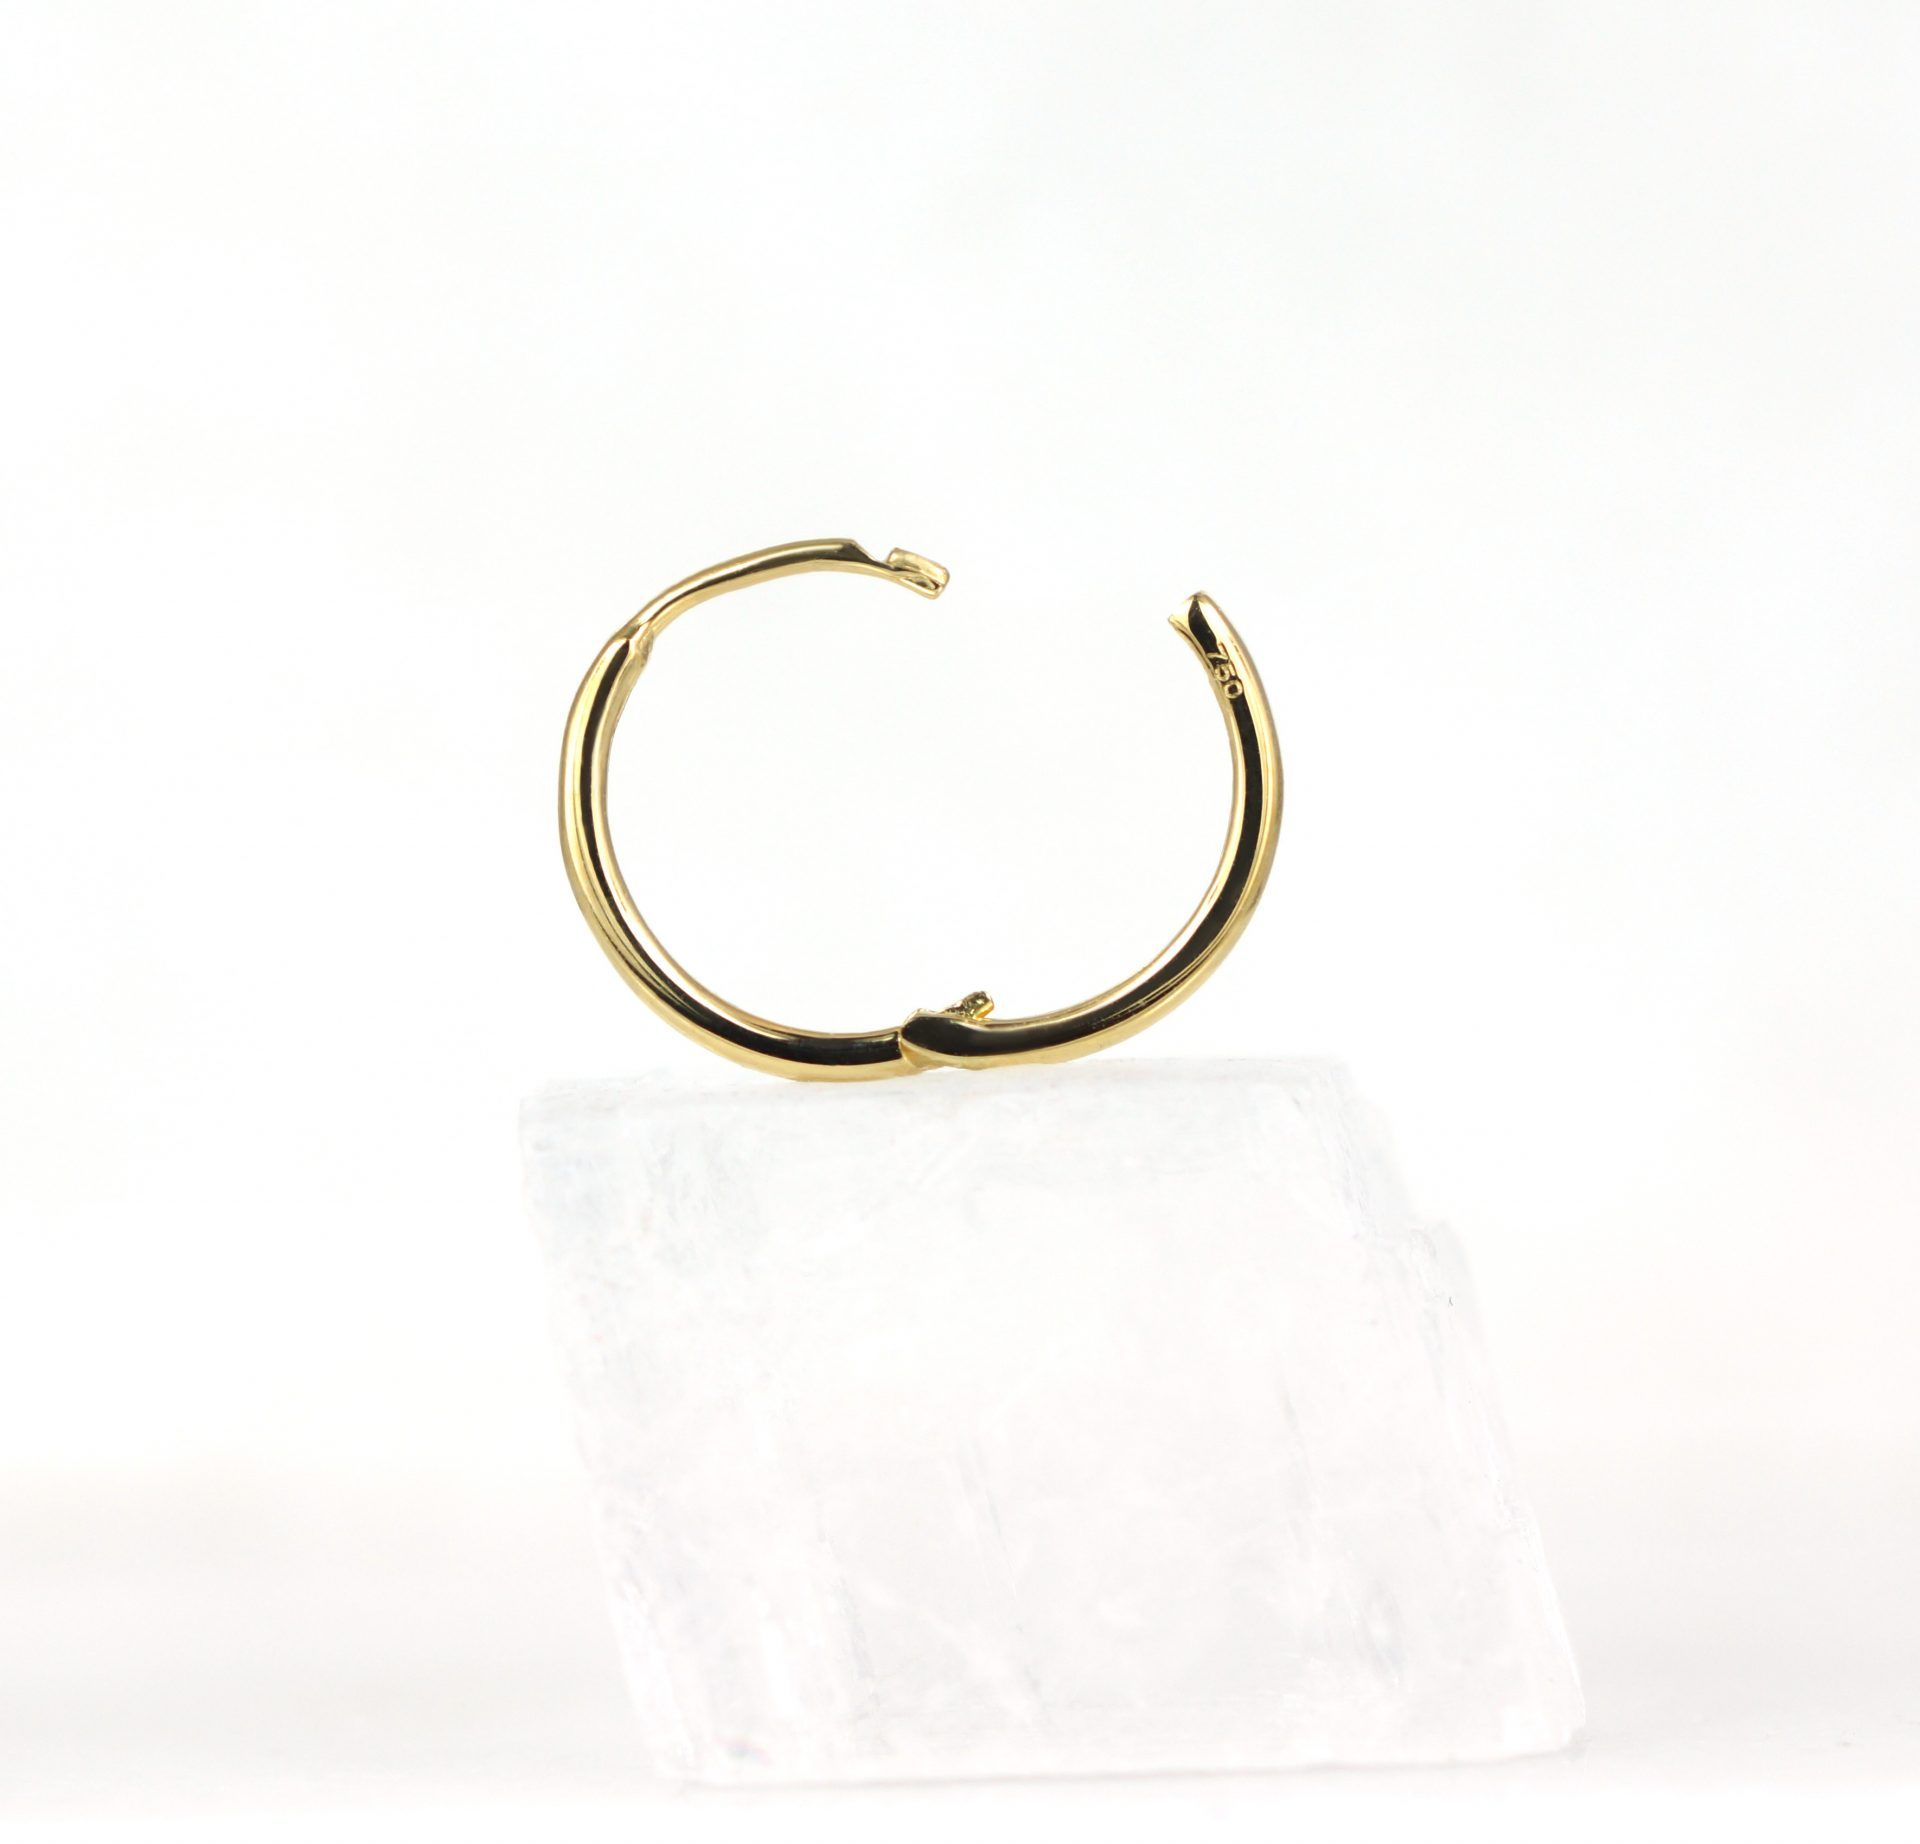 Huggie-Hoop-Earrings-Luxury-Piercings-Lena-Cohen-18k-Solid-Yellow-Gold-